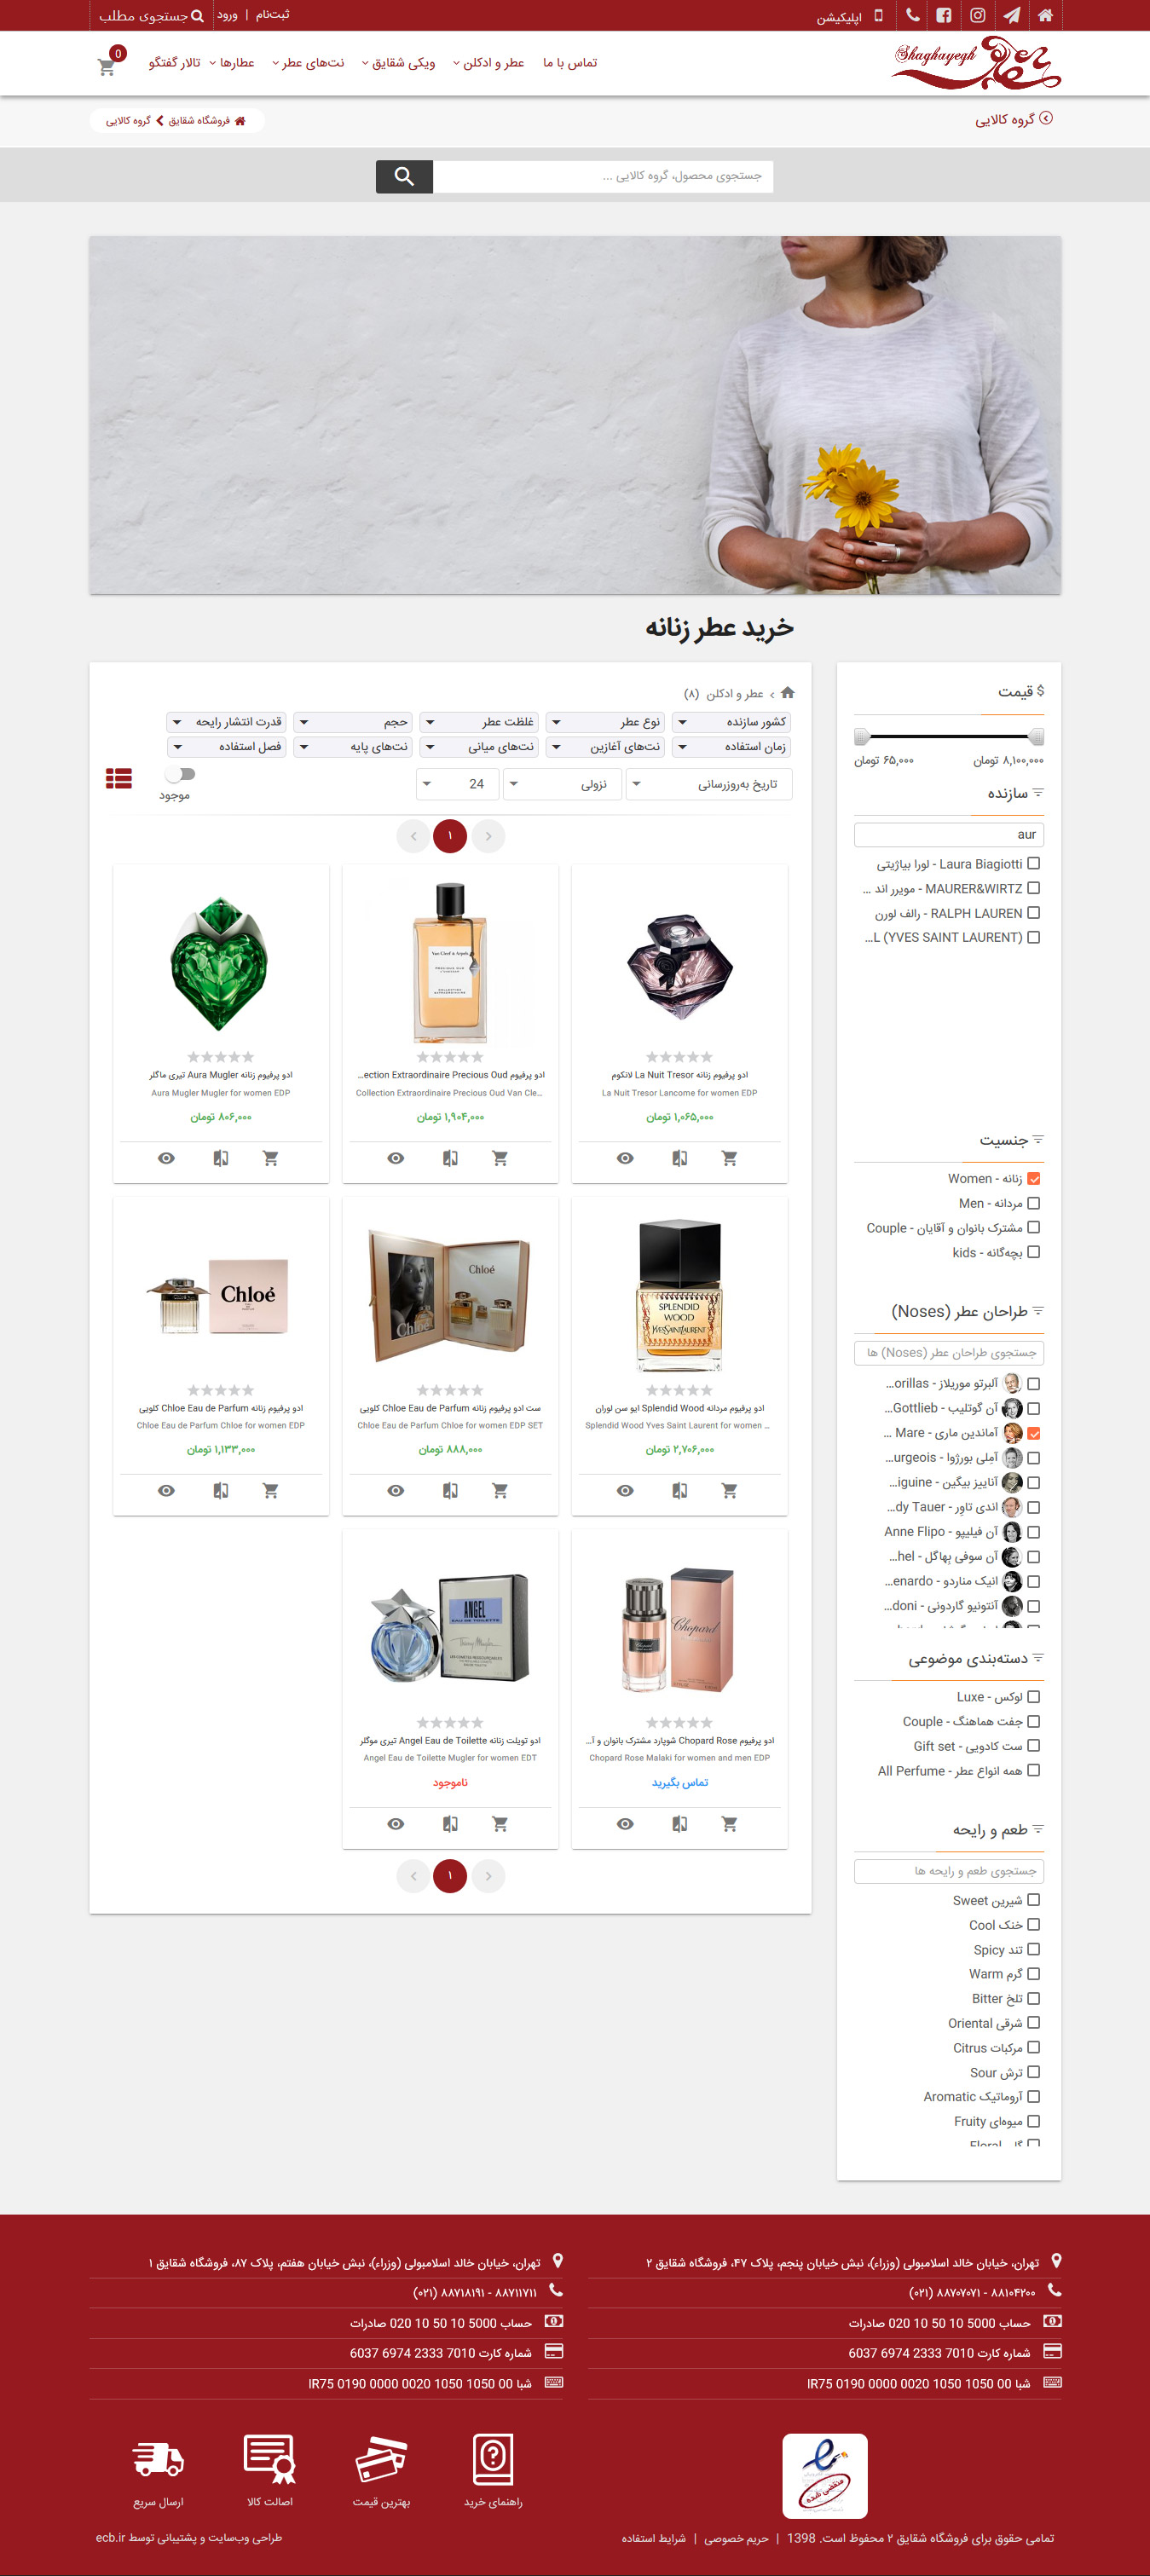 shaghayegh2-com-ProductList-by-Filters